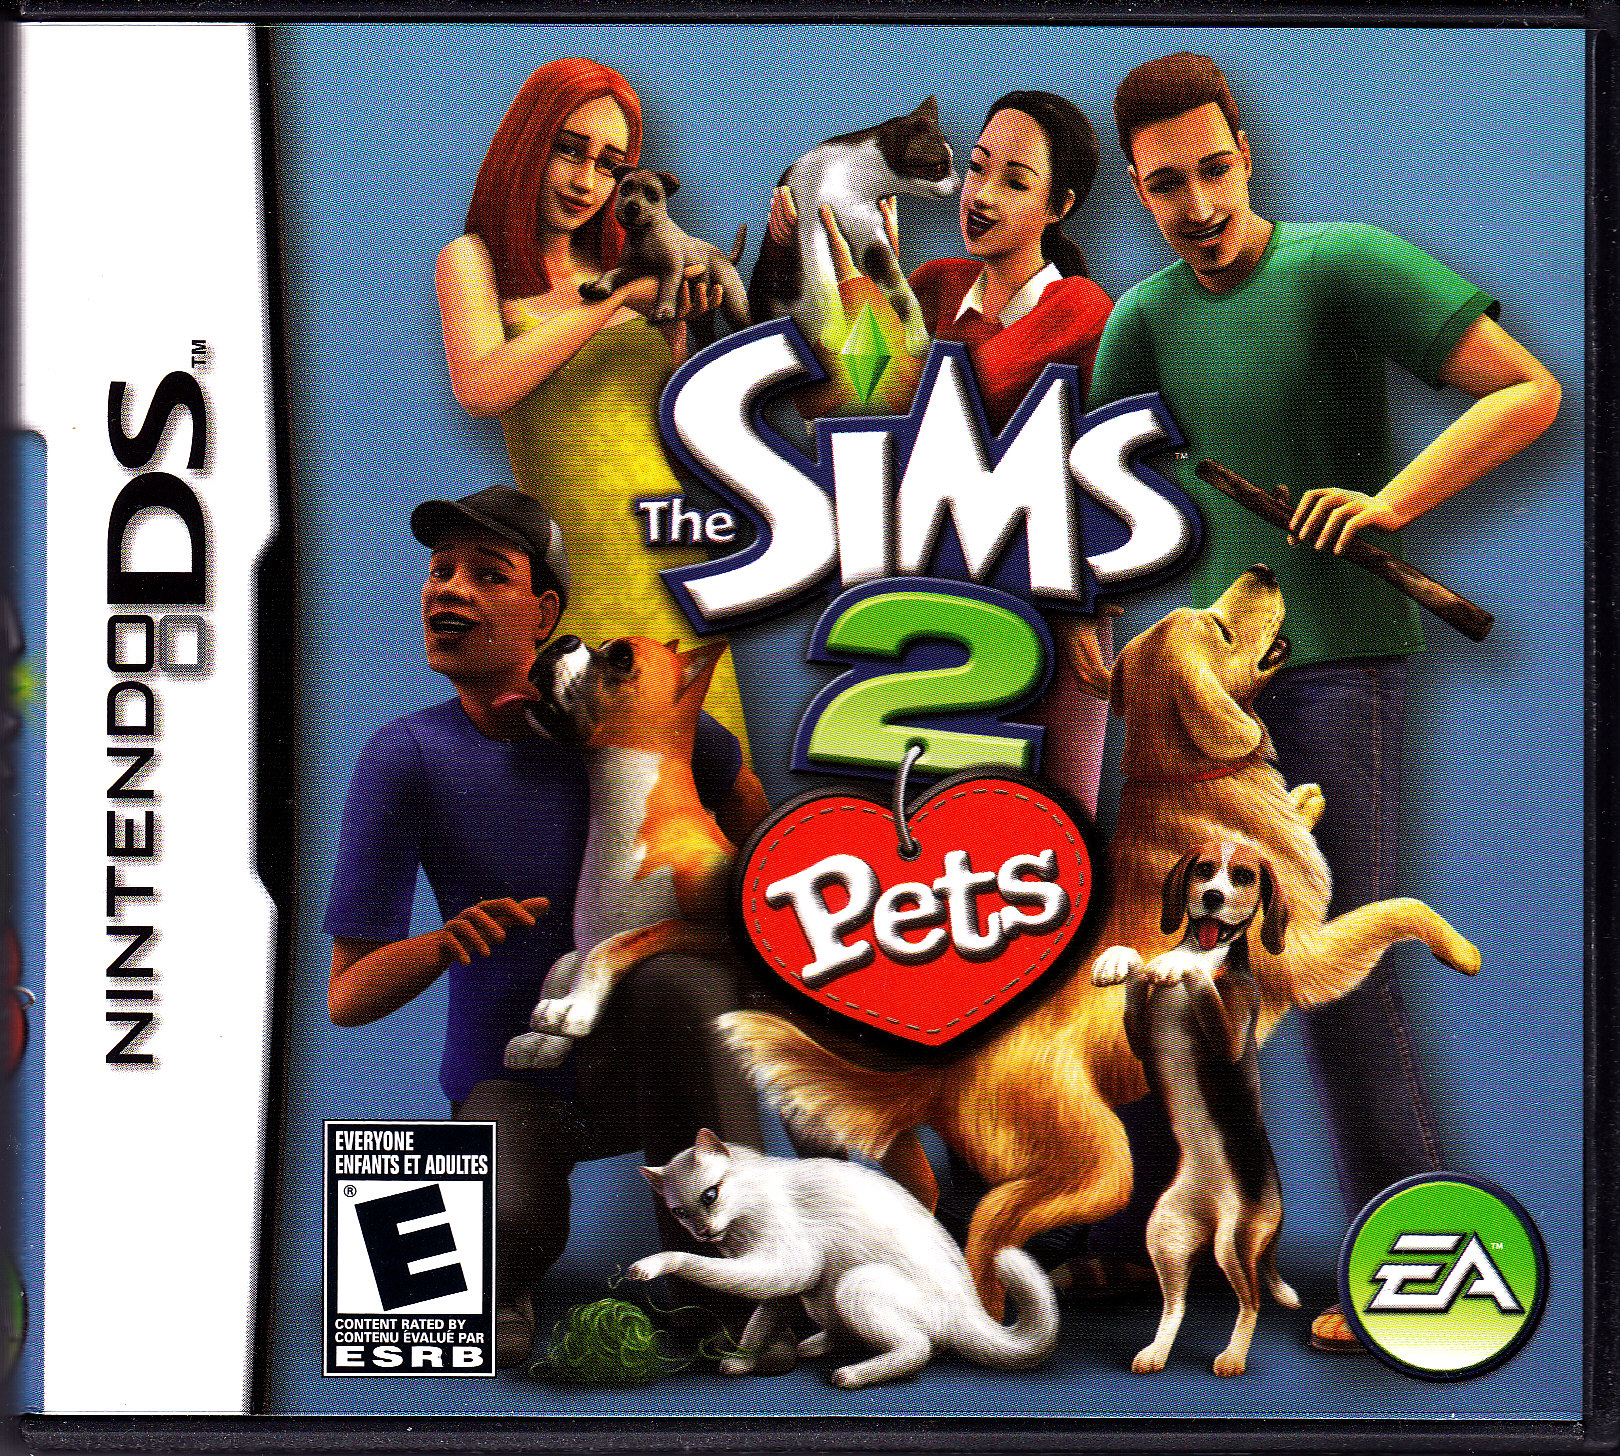 The sims 2 pets nude patch nackt realistic singles